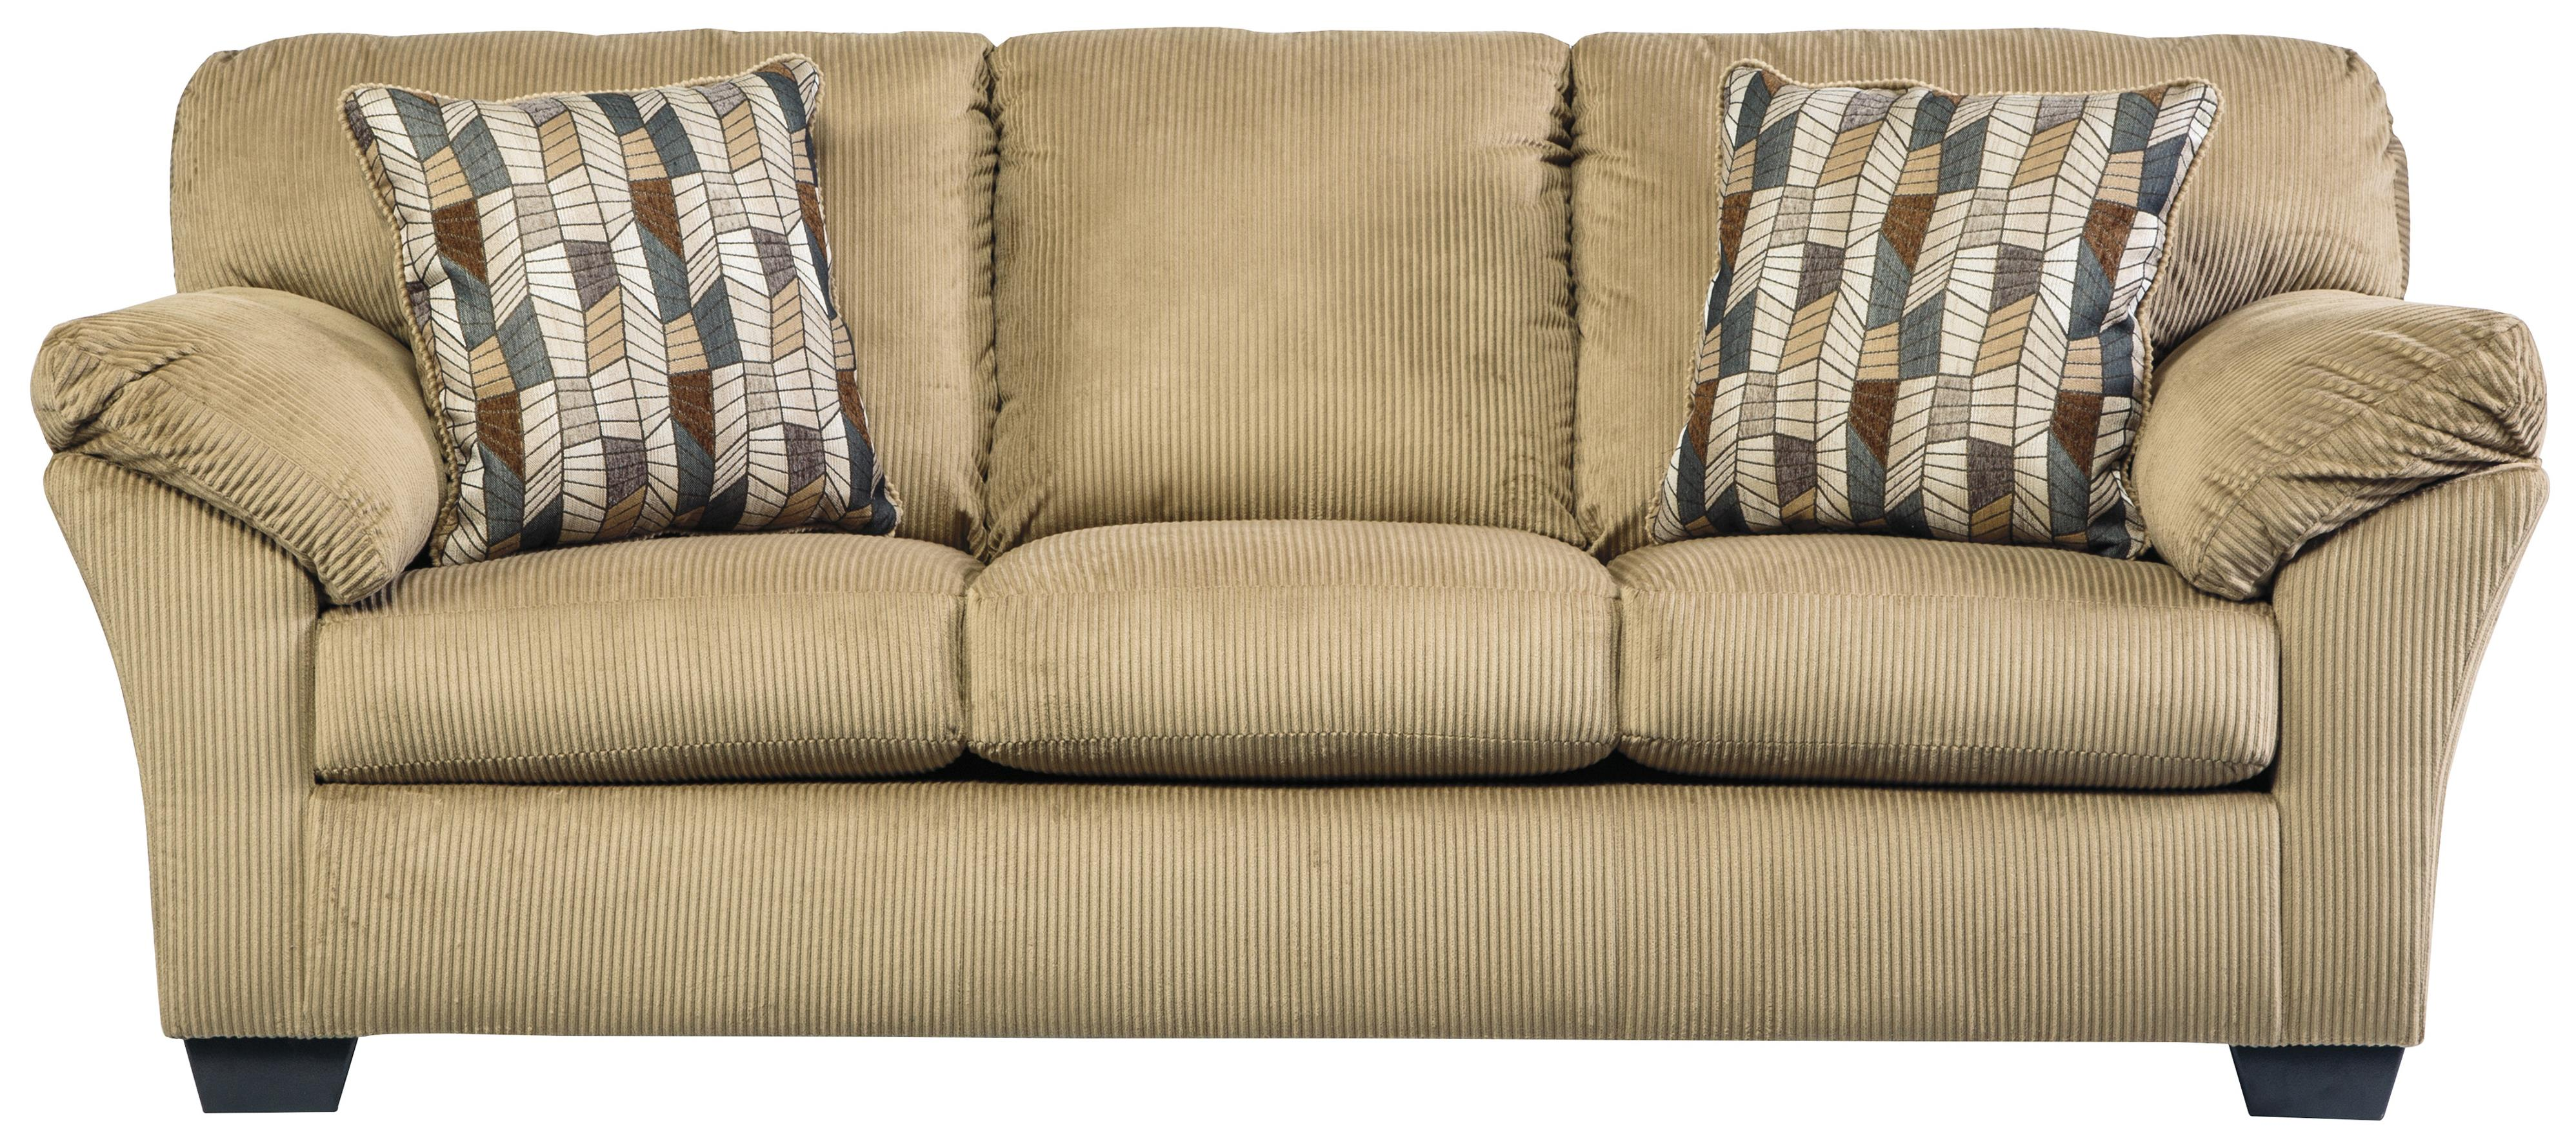 Benchcraft Aluria Queen Sofa Sleeper - Item Number: 1820139